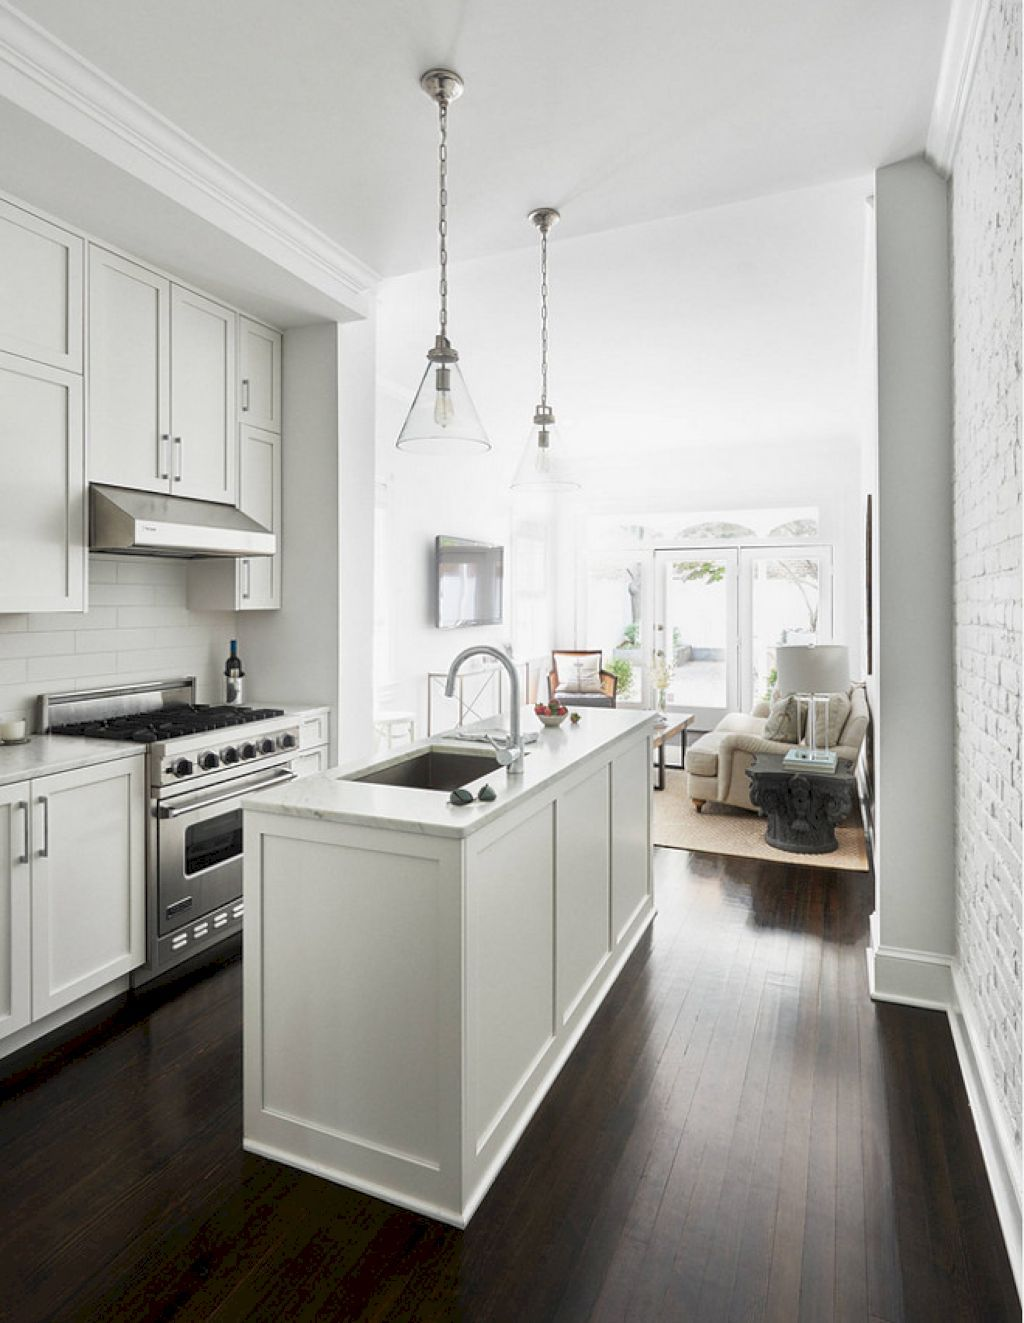 76 Simple and Minimalist Small White Kitchen